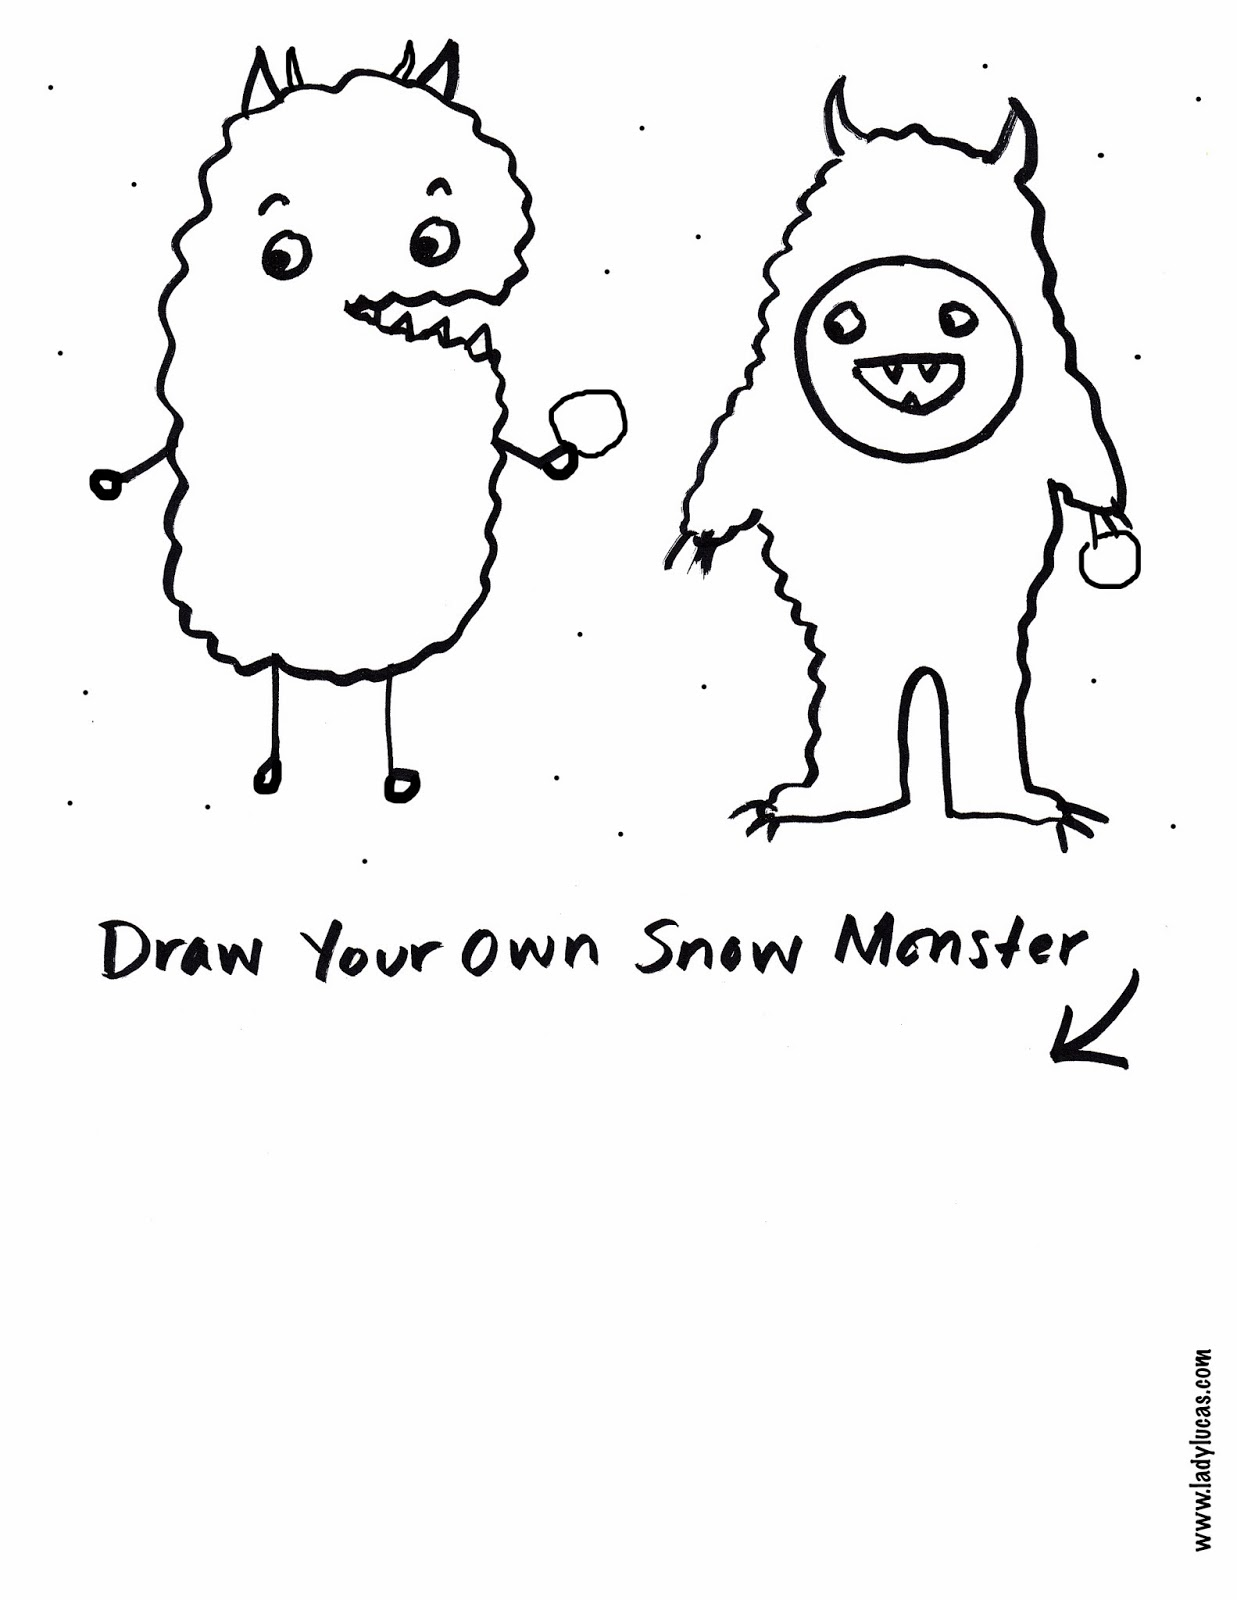 Cupcakes Owls Snow Monster Draw Amp Color For Kids